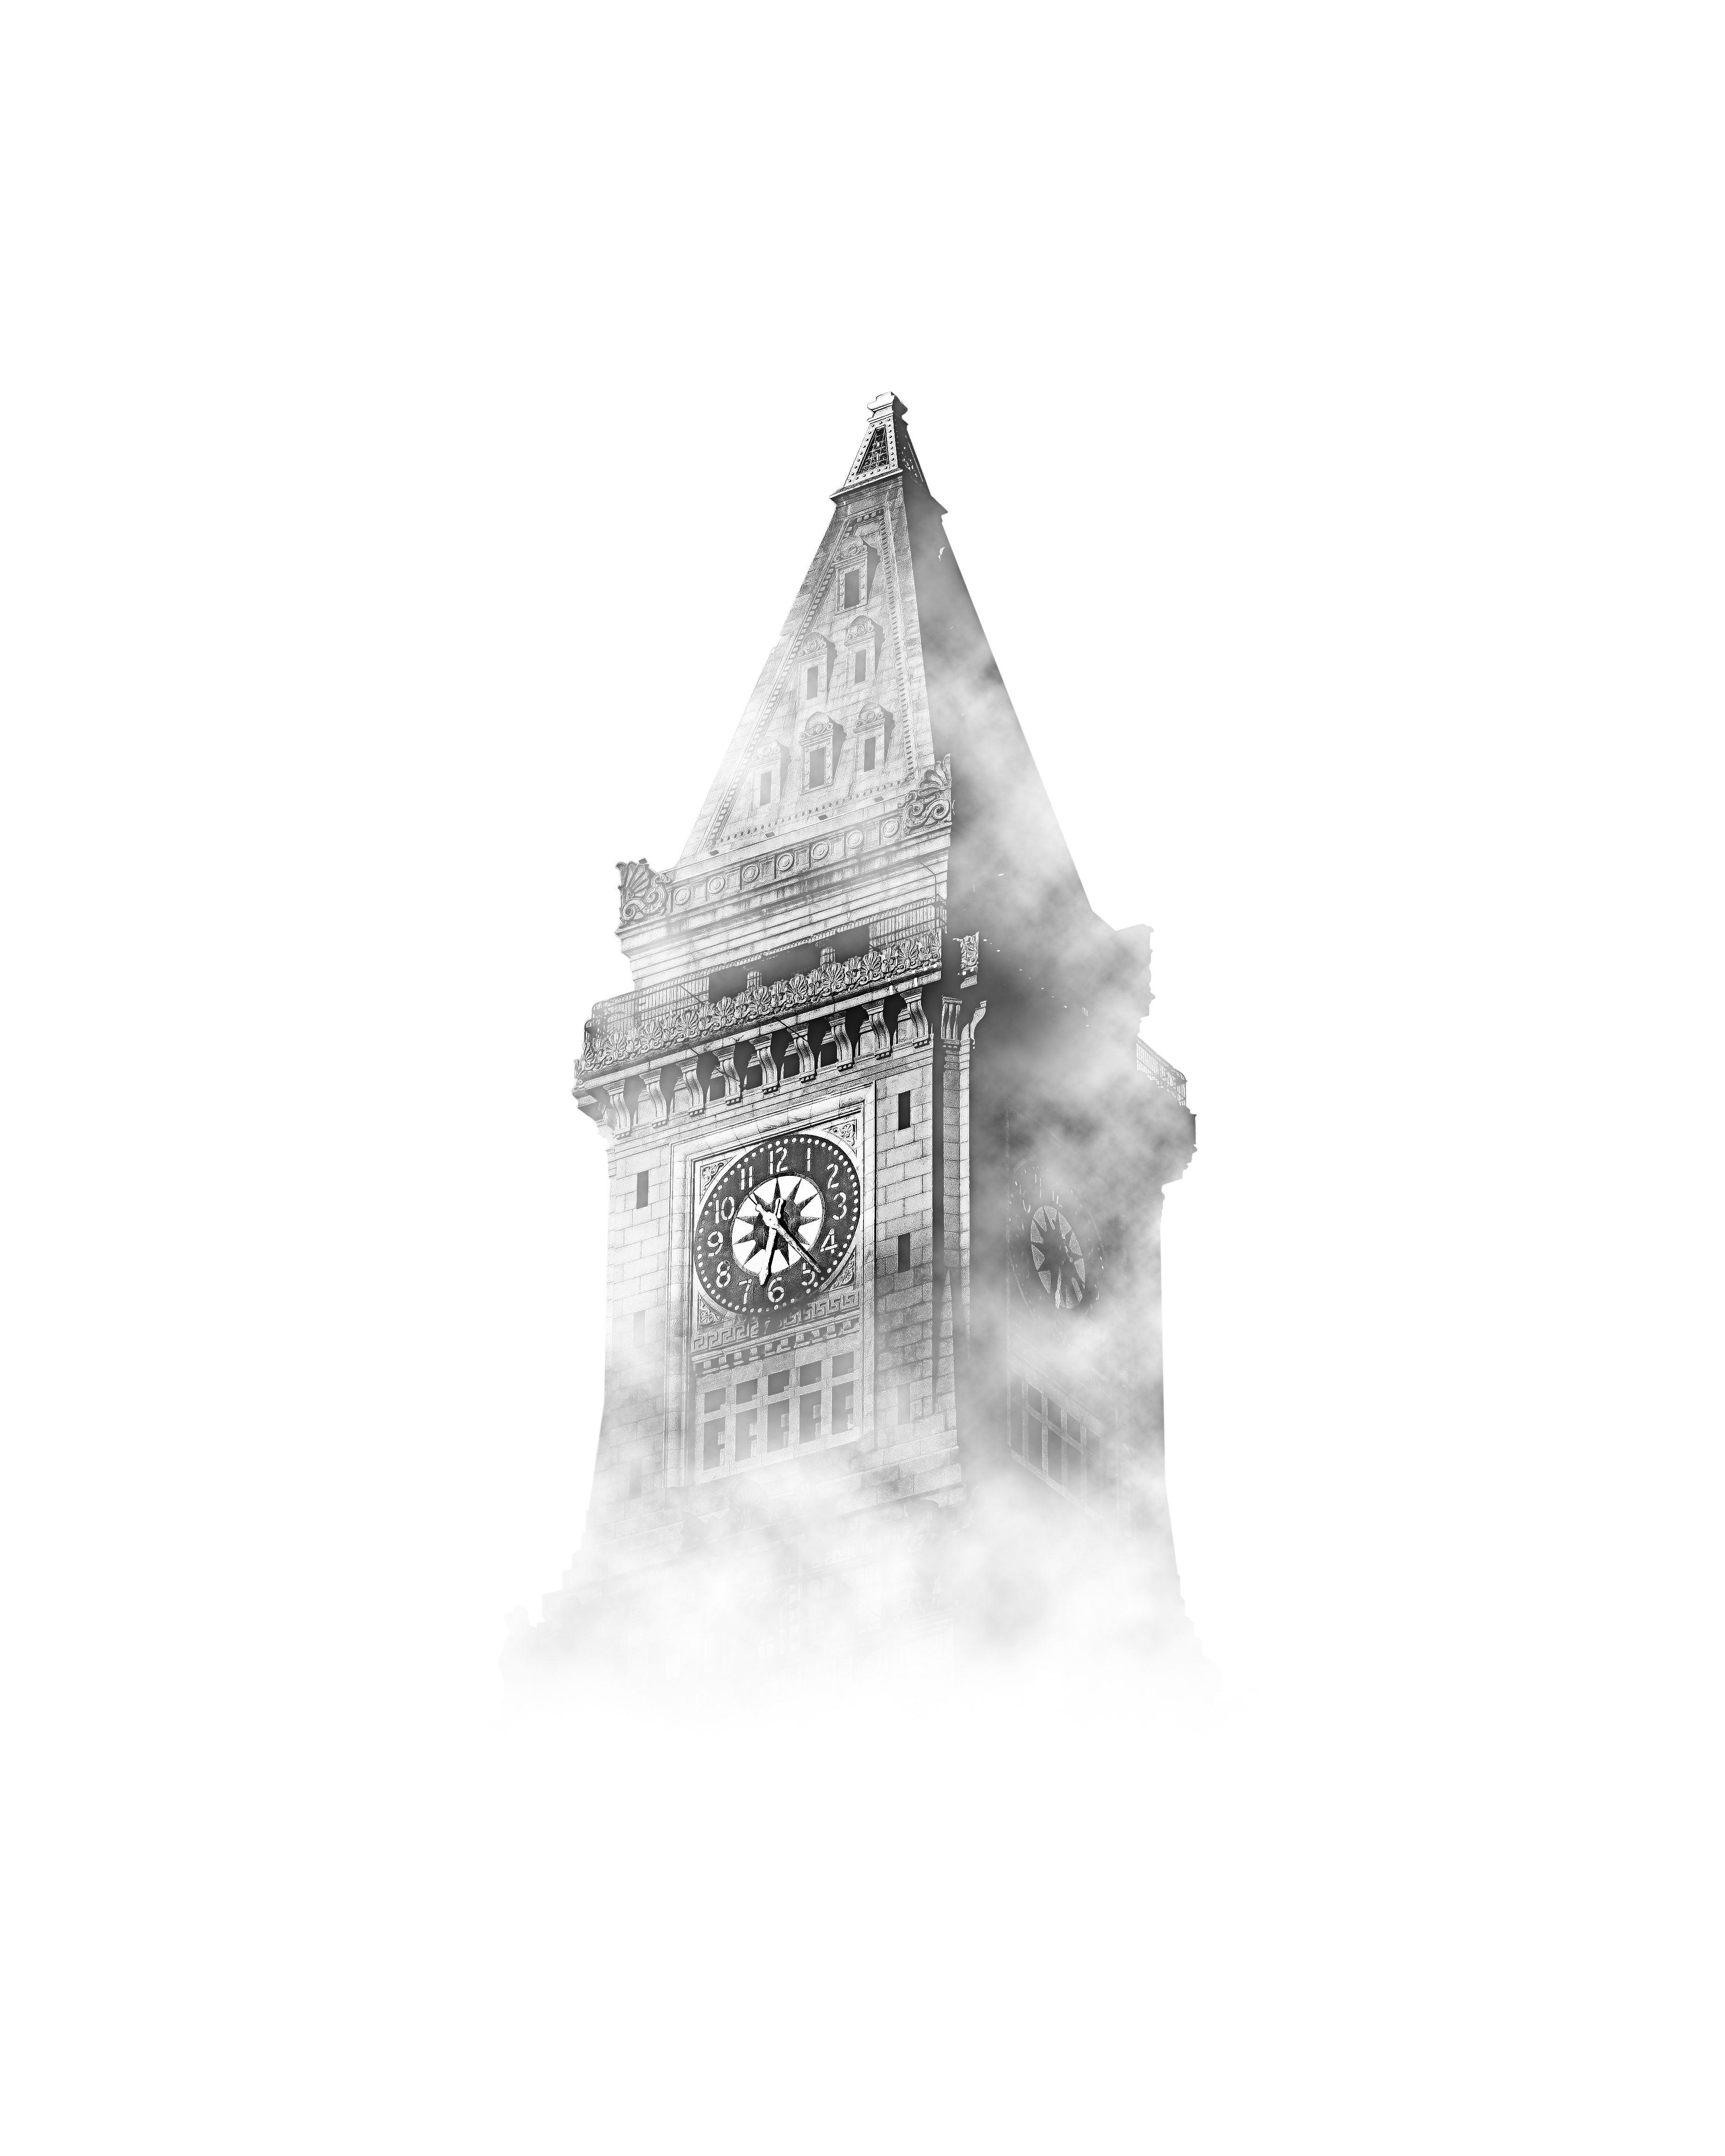 A clock tower shrouded in thick mist